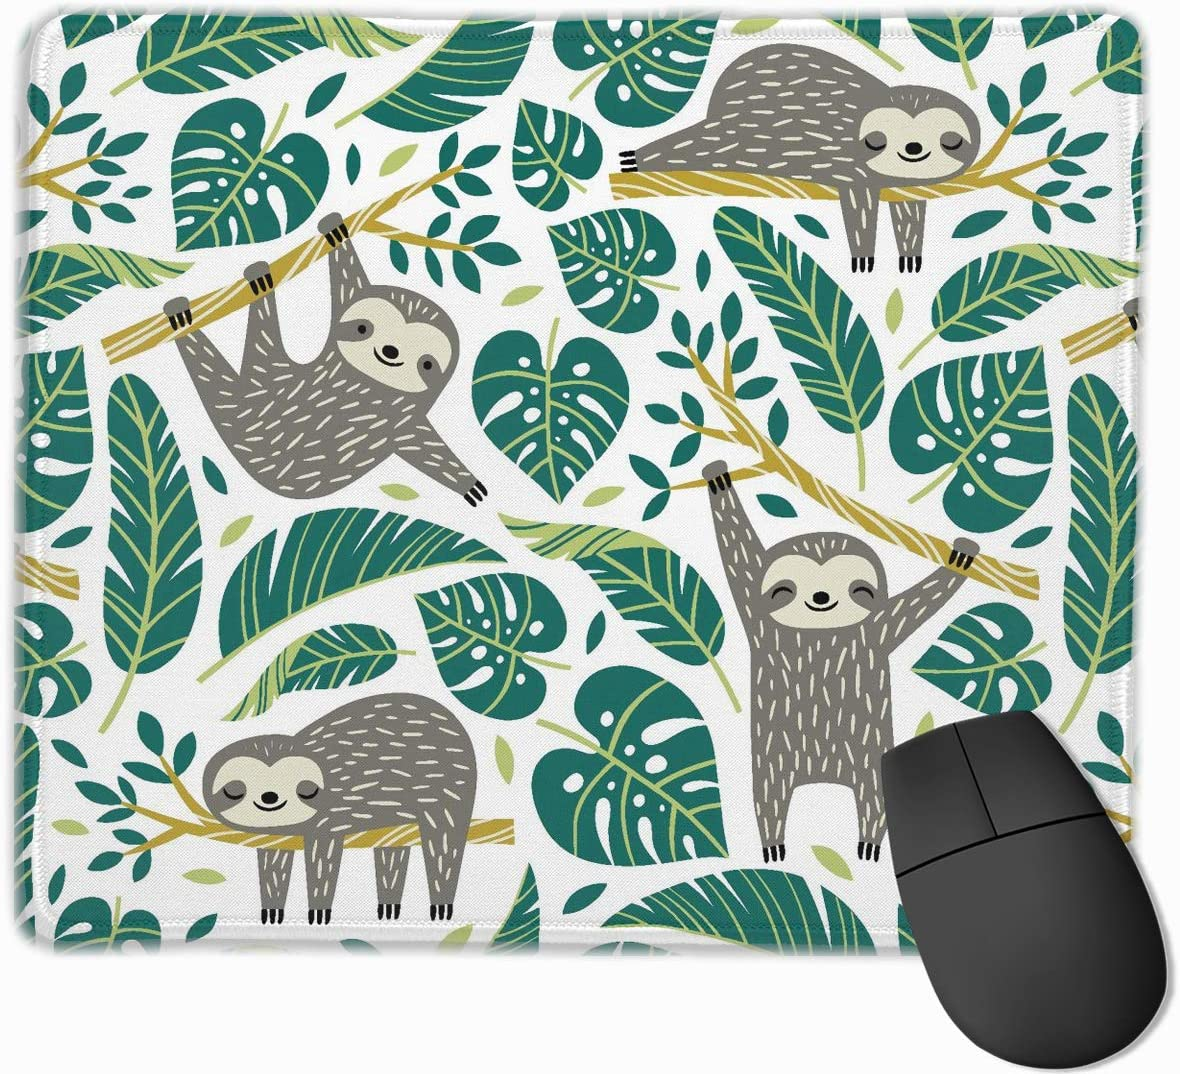 Mouse Pad with Stitched Edge, Cute Sloths and Tropical Palm Leaves Mouse Mat, Non-Slip Rubber Base Gaming Mousepad for Laptop, Computer & PC 11.8 X 9.8 Inch.